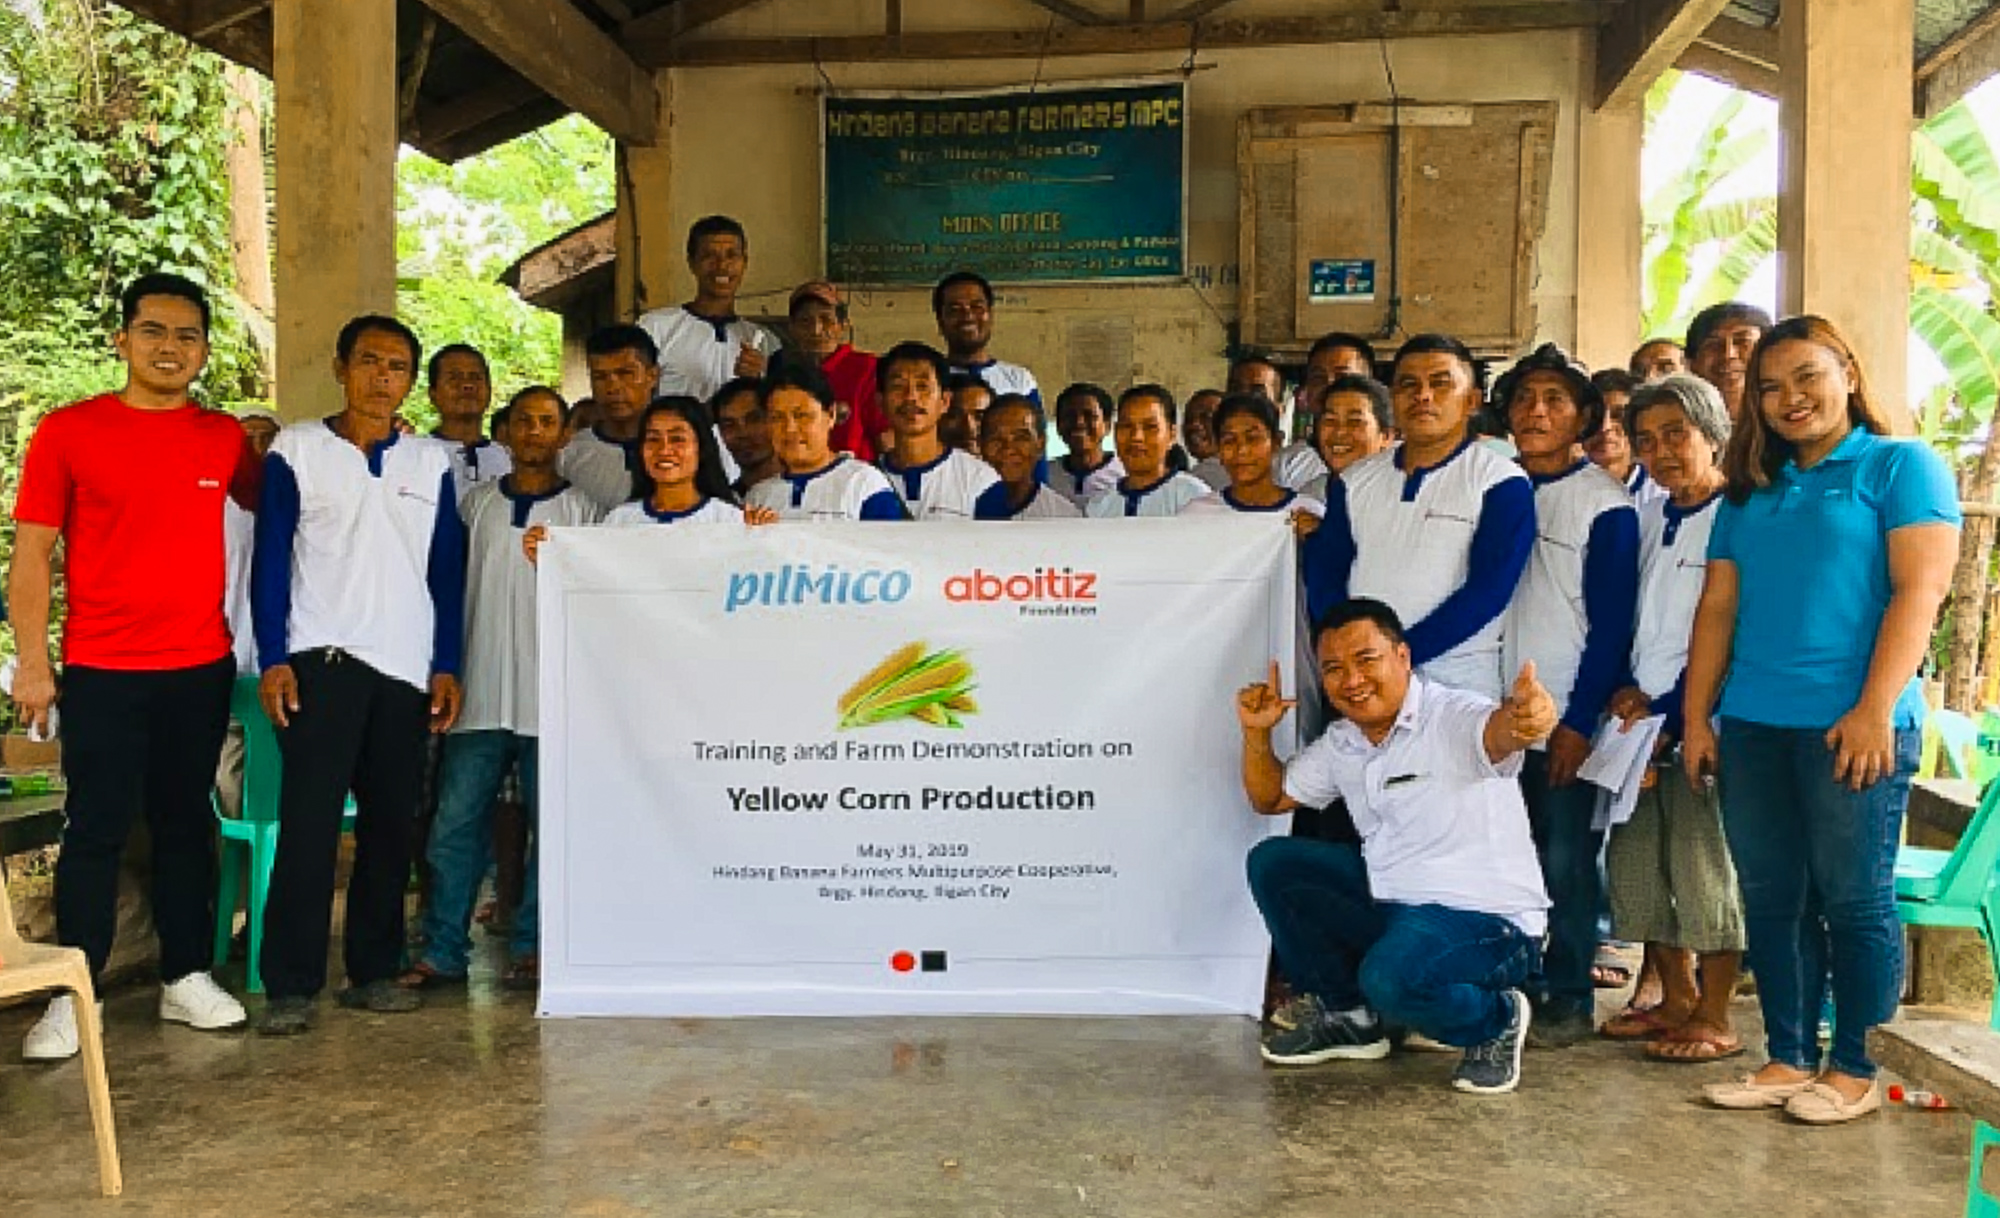 Members of the Hindang Banana Farmers Multipurpose Cooperative (Iligan City) during the pilot Training and Farm Demonstration under the new agri-preneurship joint project of Aboitiz Foundation, Pilmico, Jardine Distribution, and the Department of Agriculture.